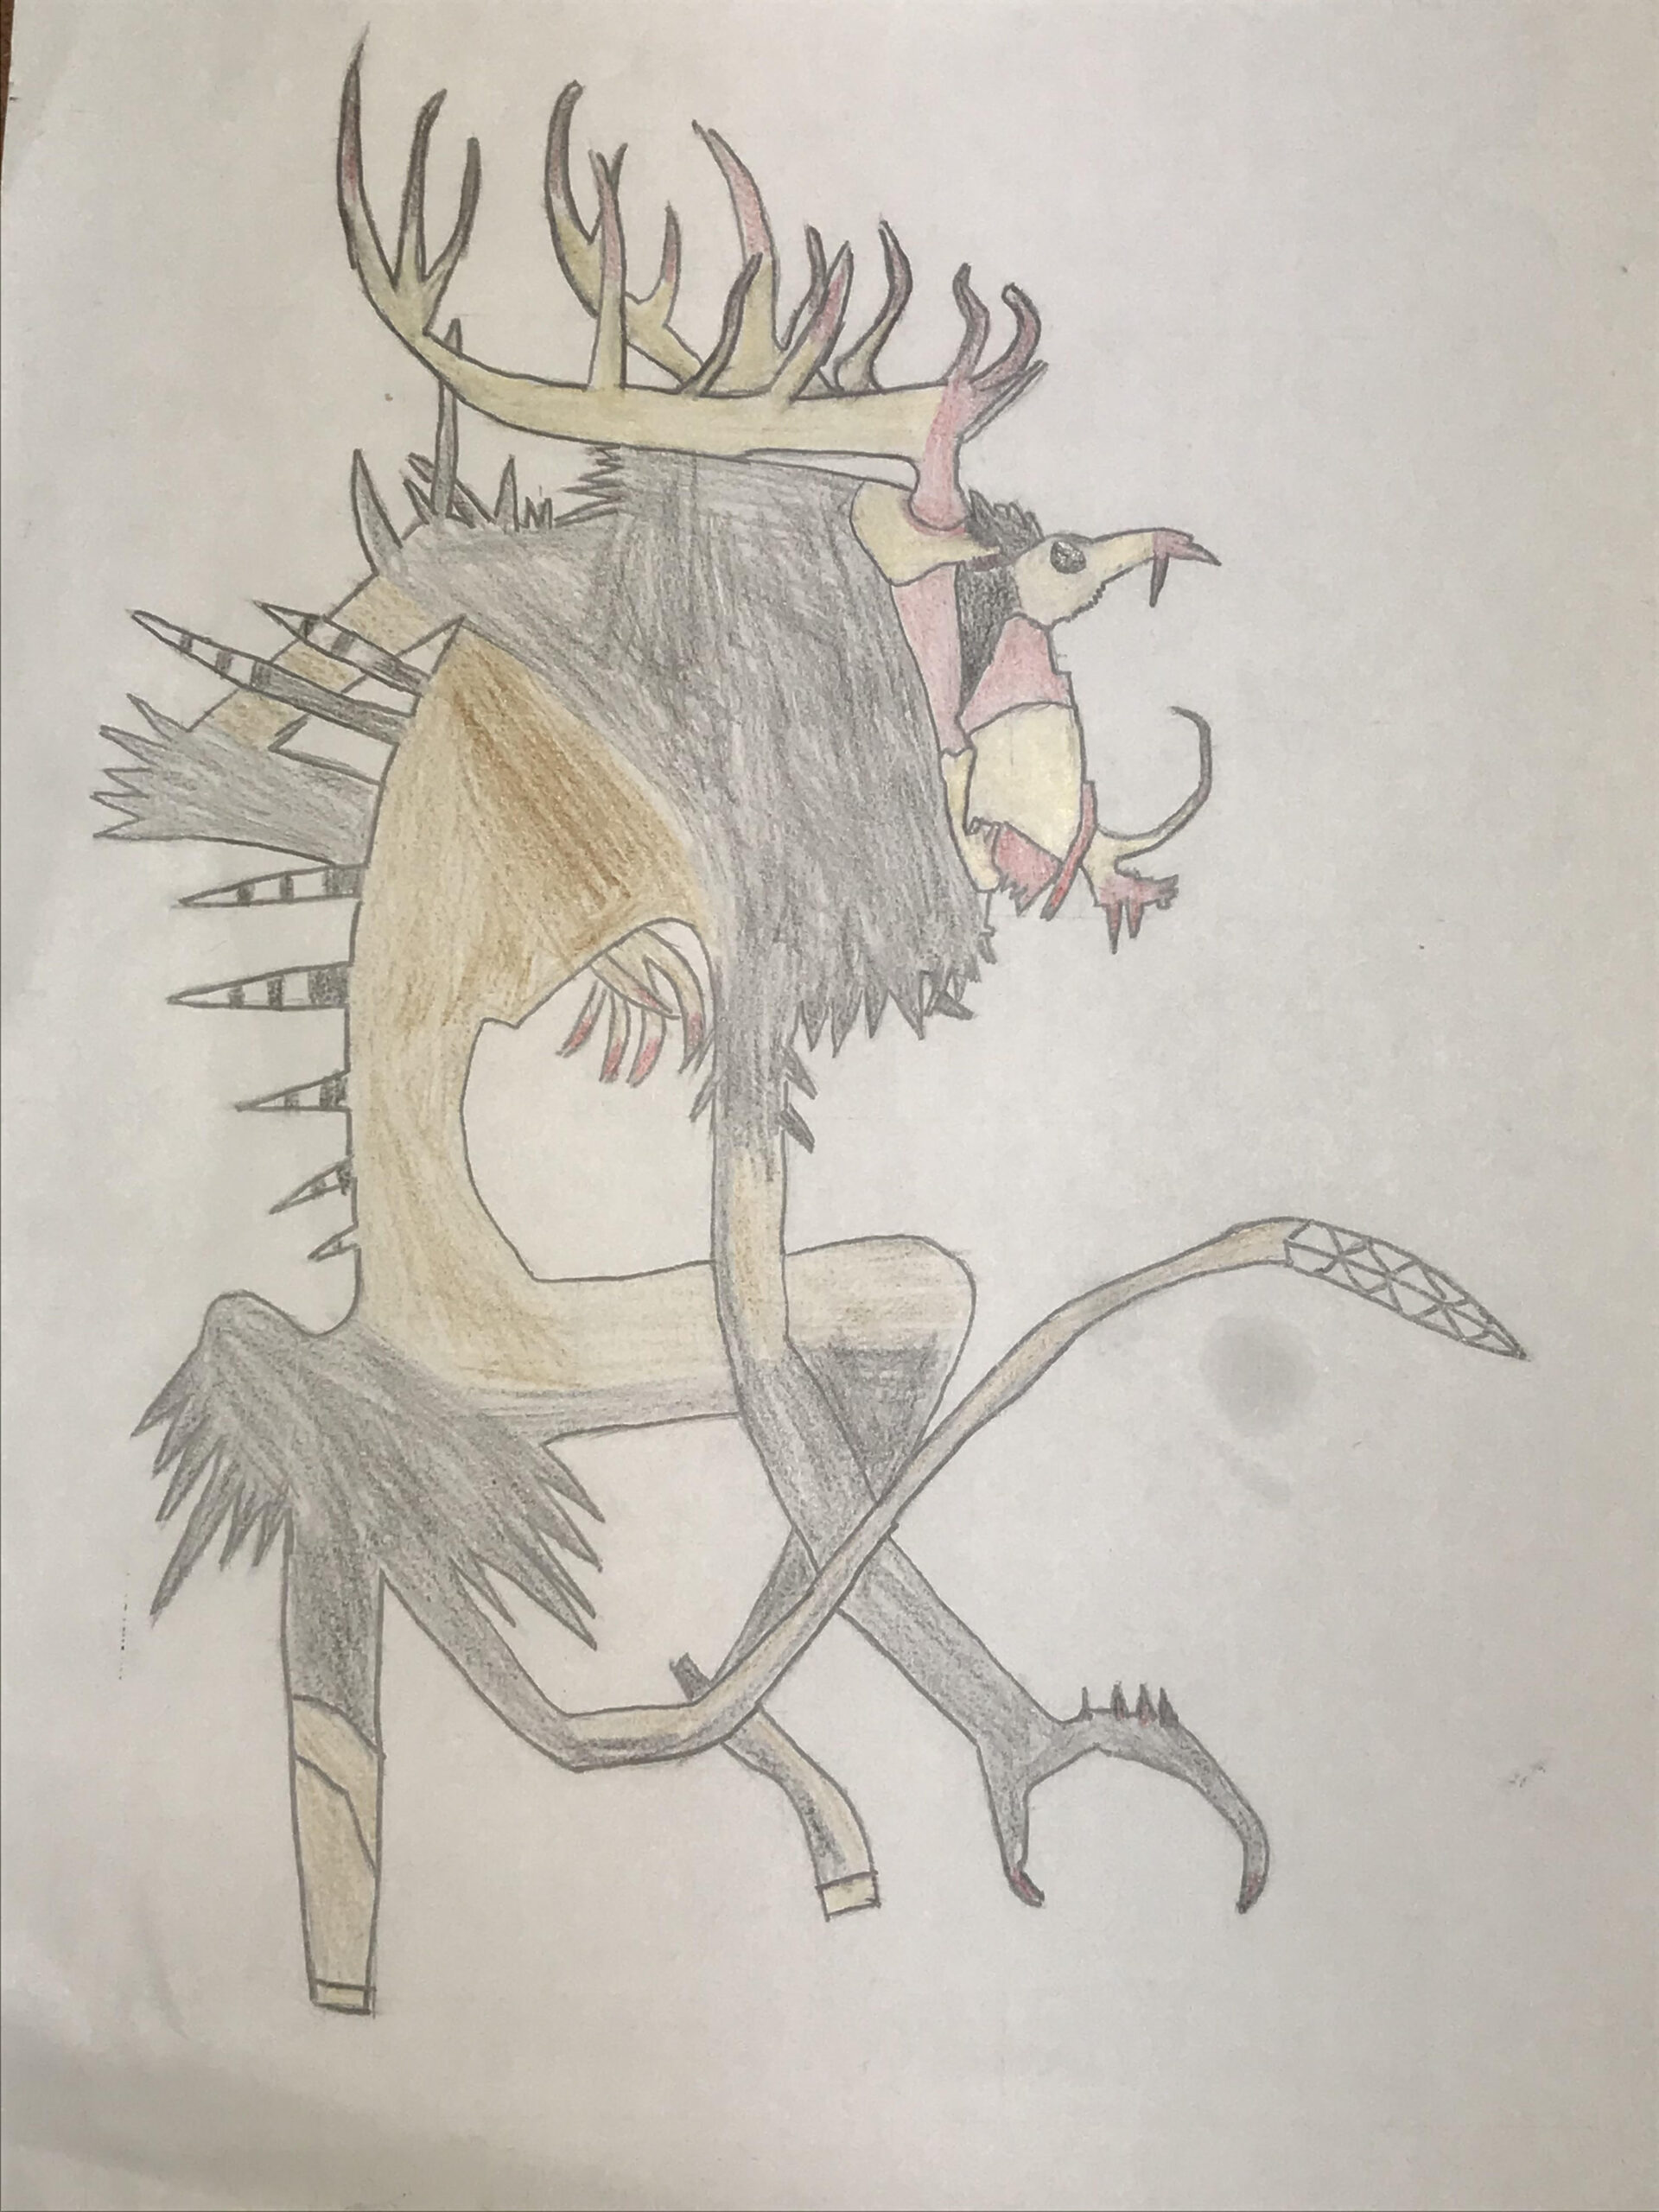 pencil drawing of mythical creature